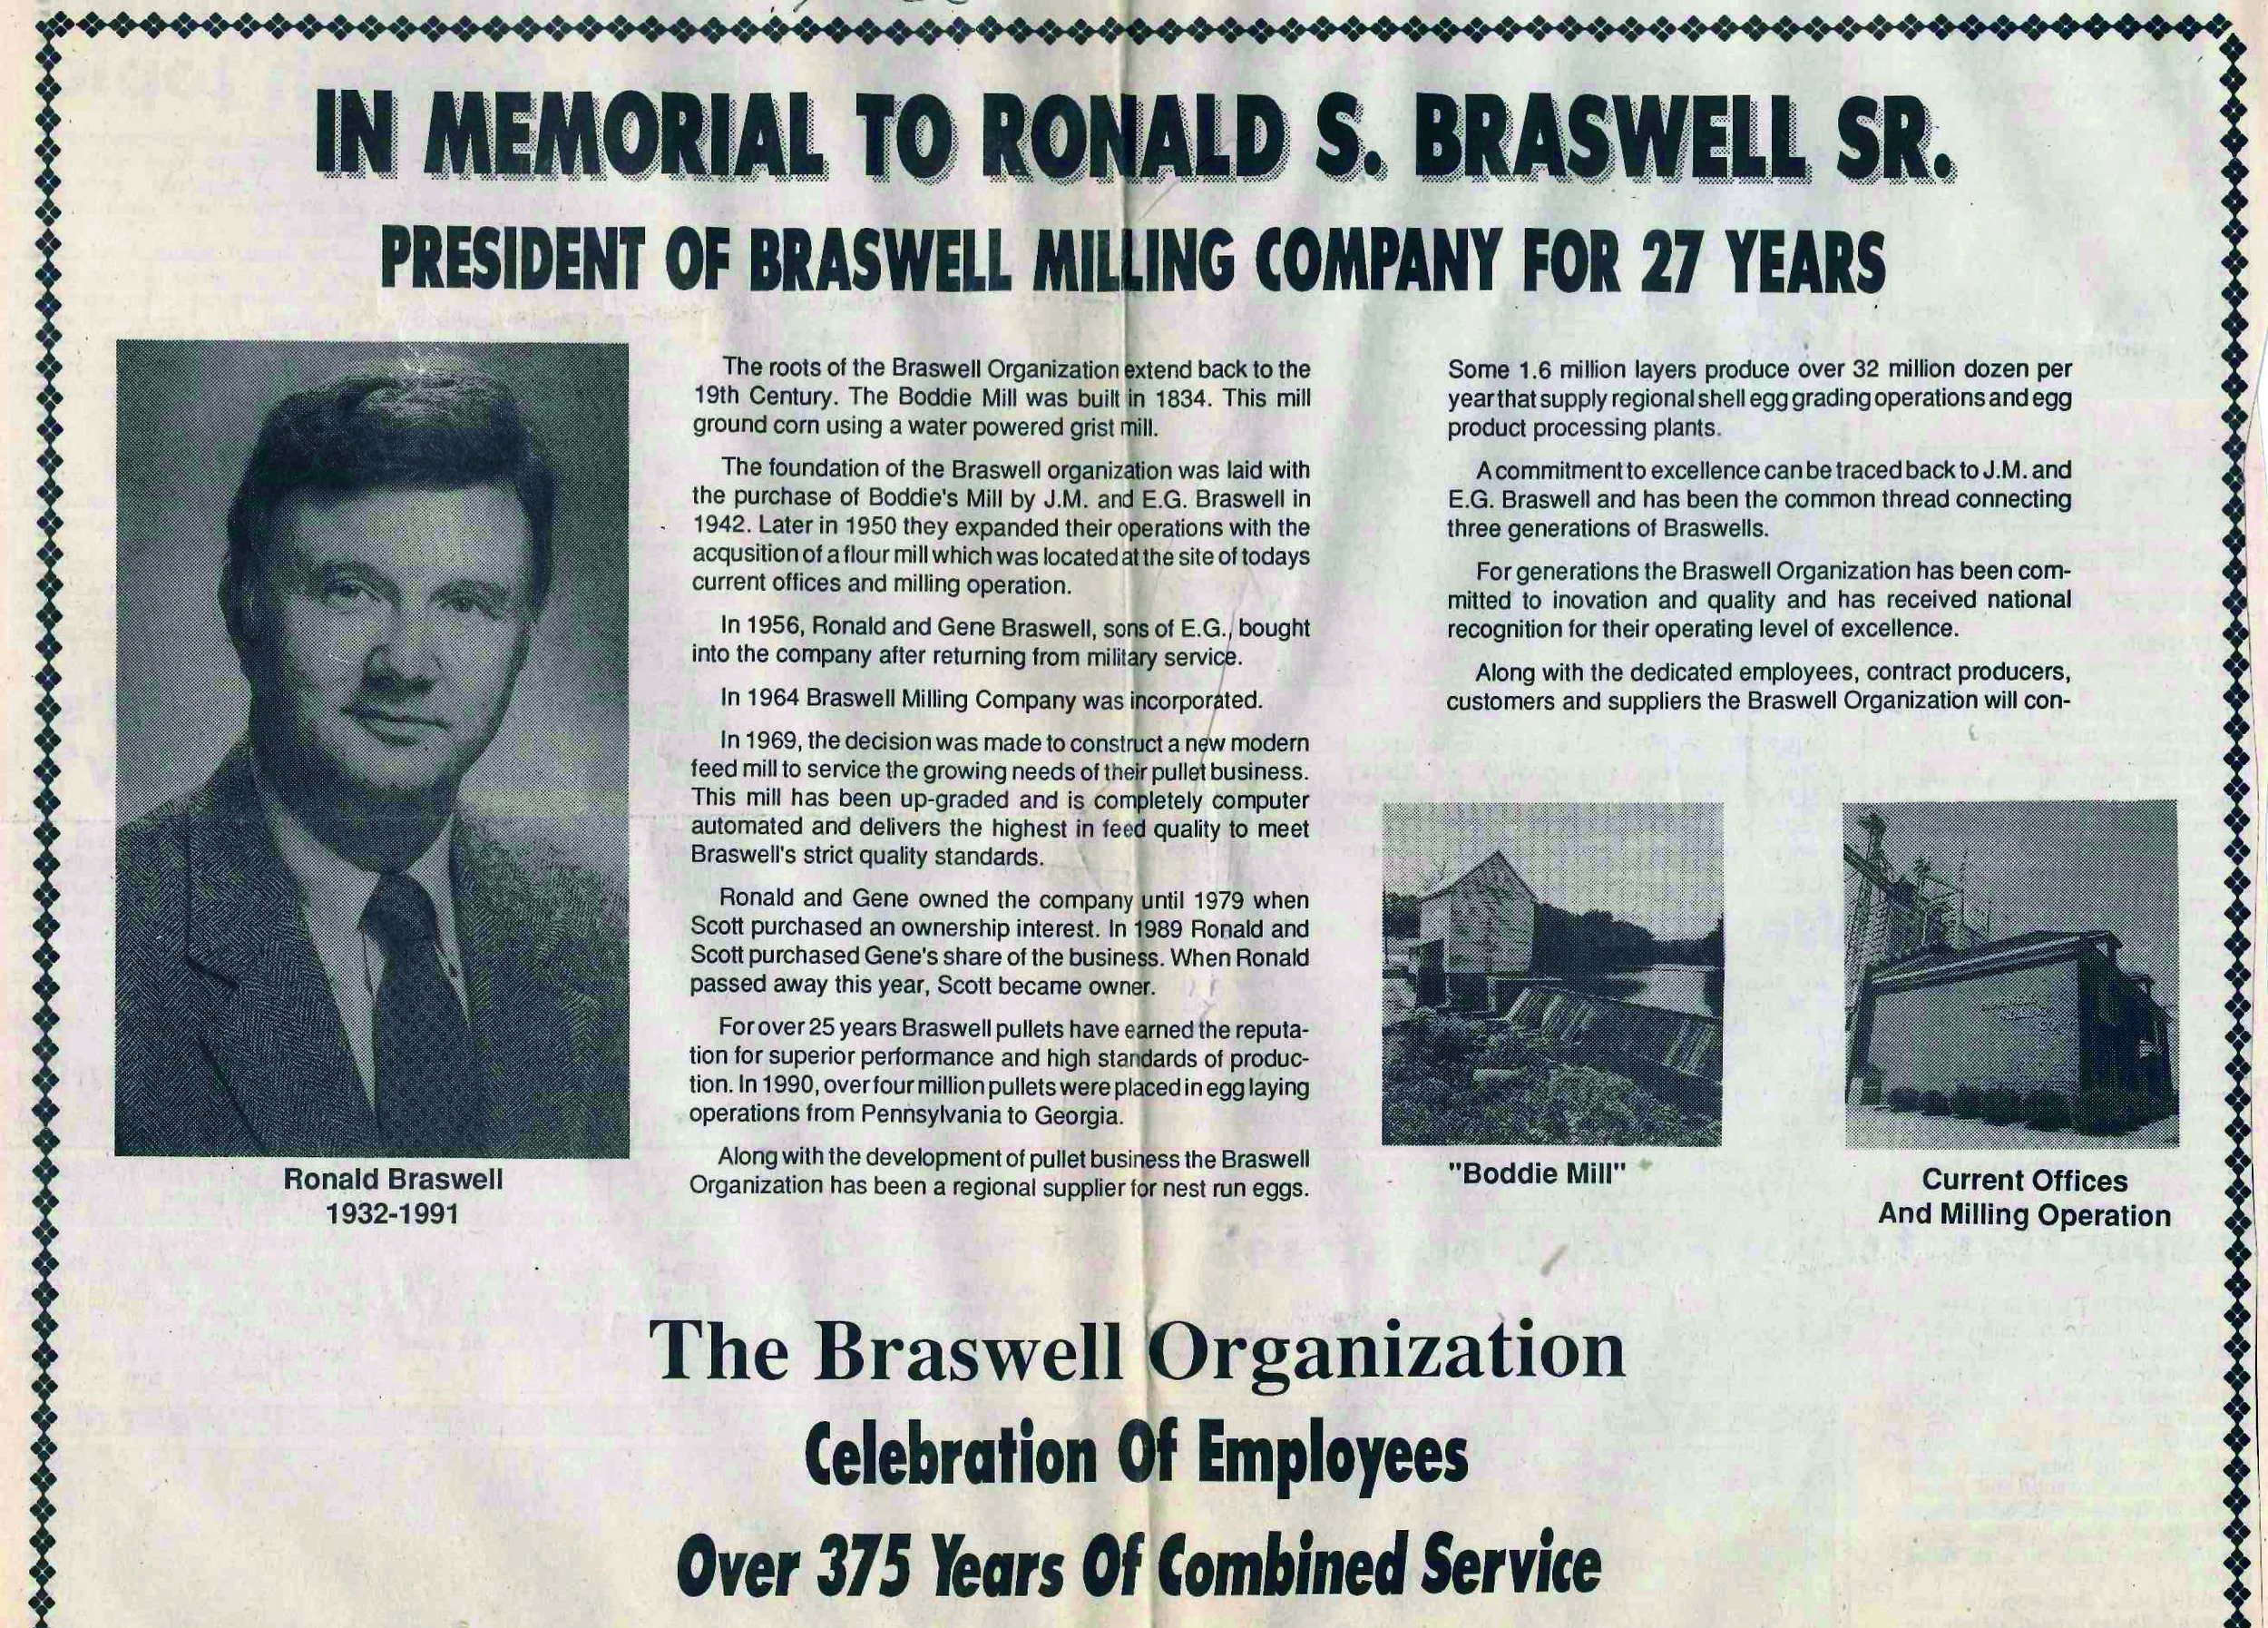 A memorial to Ronald Braswell published in the Rocky Mount Telegram in October, 1991. The memorial was published in conjunction with an employee picnic celebrating our 48th anniversary.